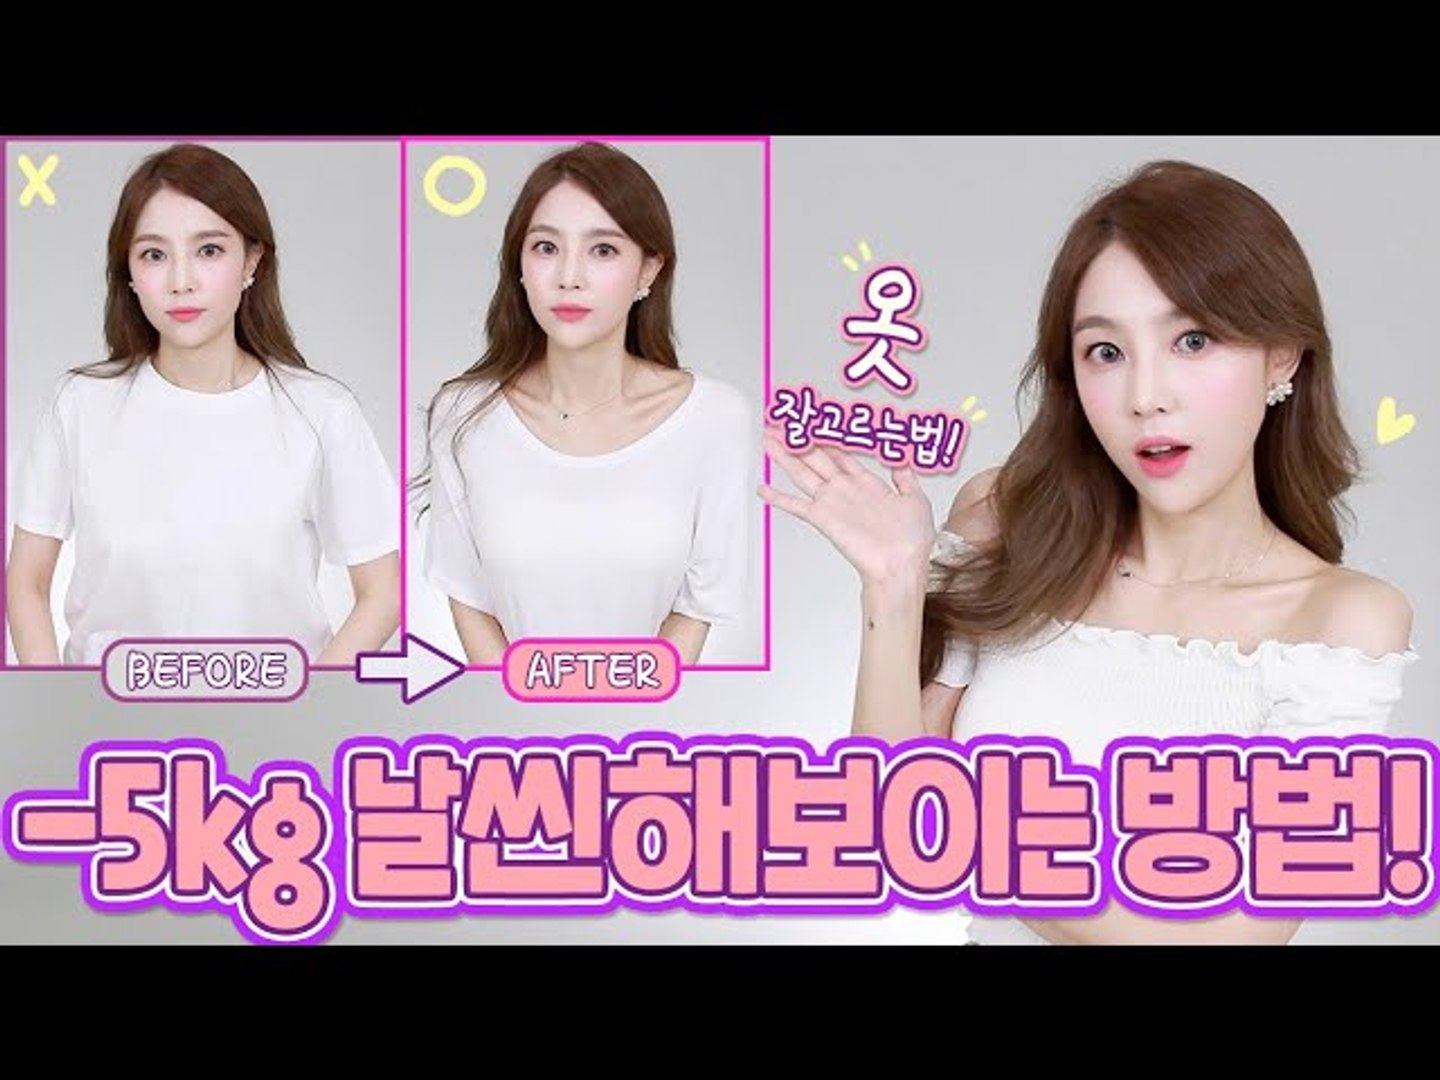 How to look slim (5kg lower body obesity cover, upper body cover, etc.)